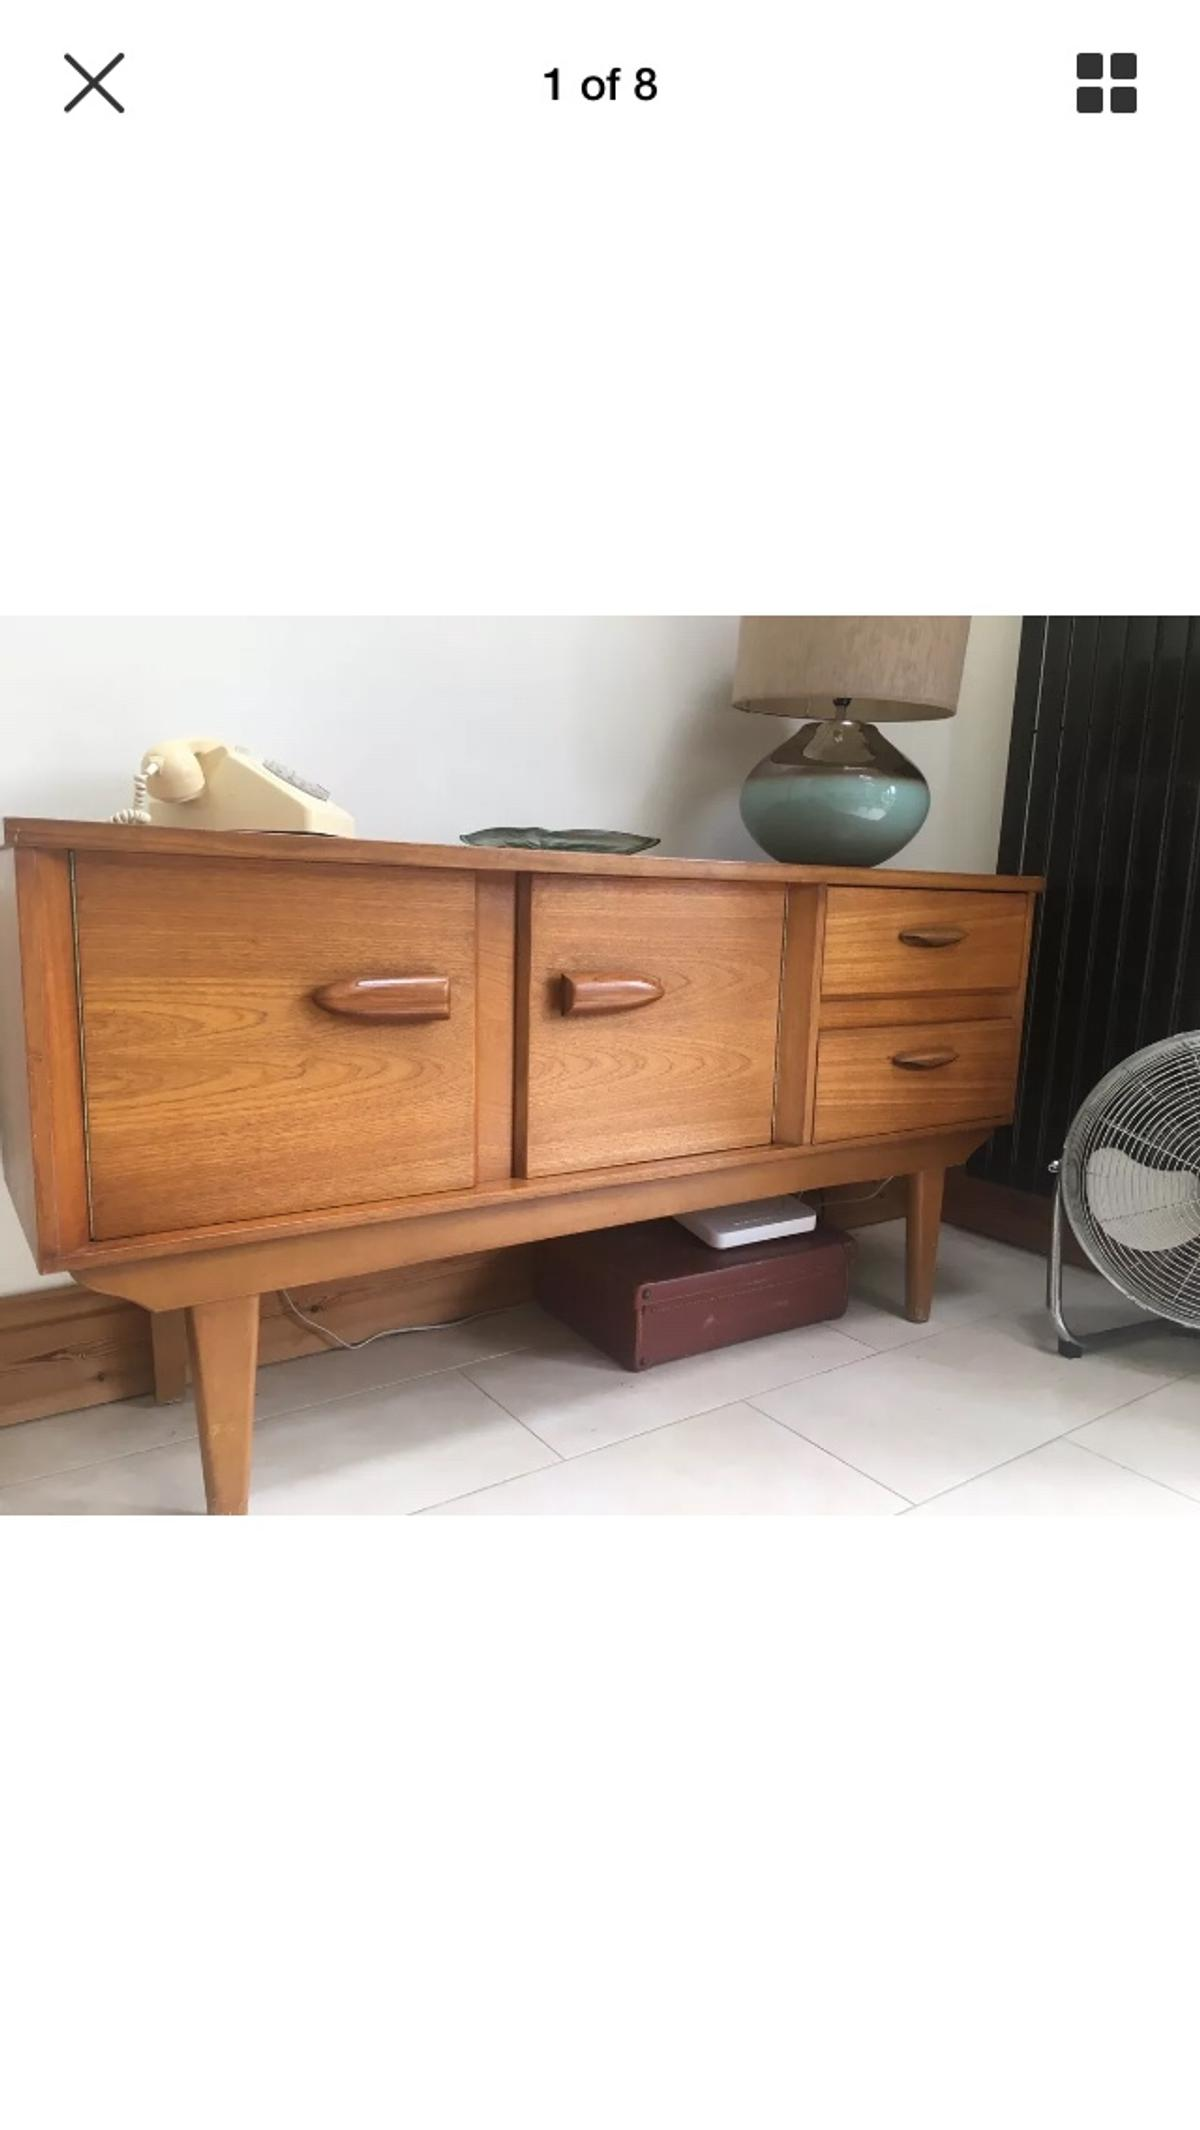 Jentique Retro Mid Century Sideboard Dresser In Ch3 Boughton For 395 00 For Sale Shpock